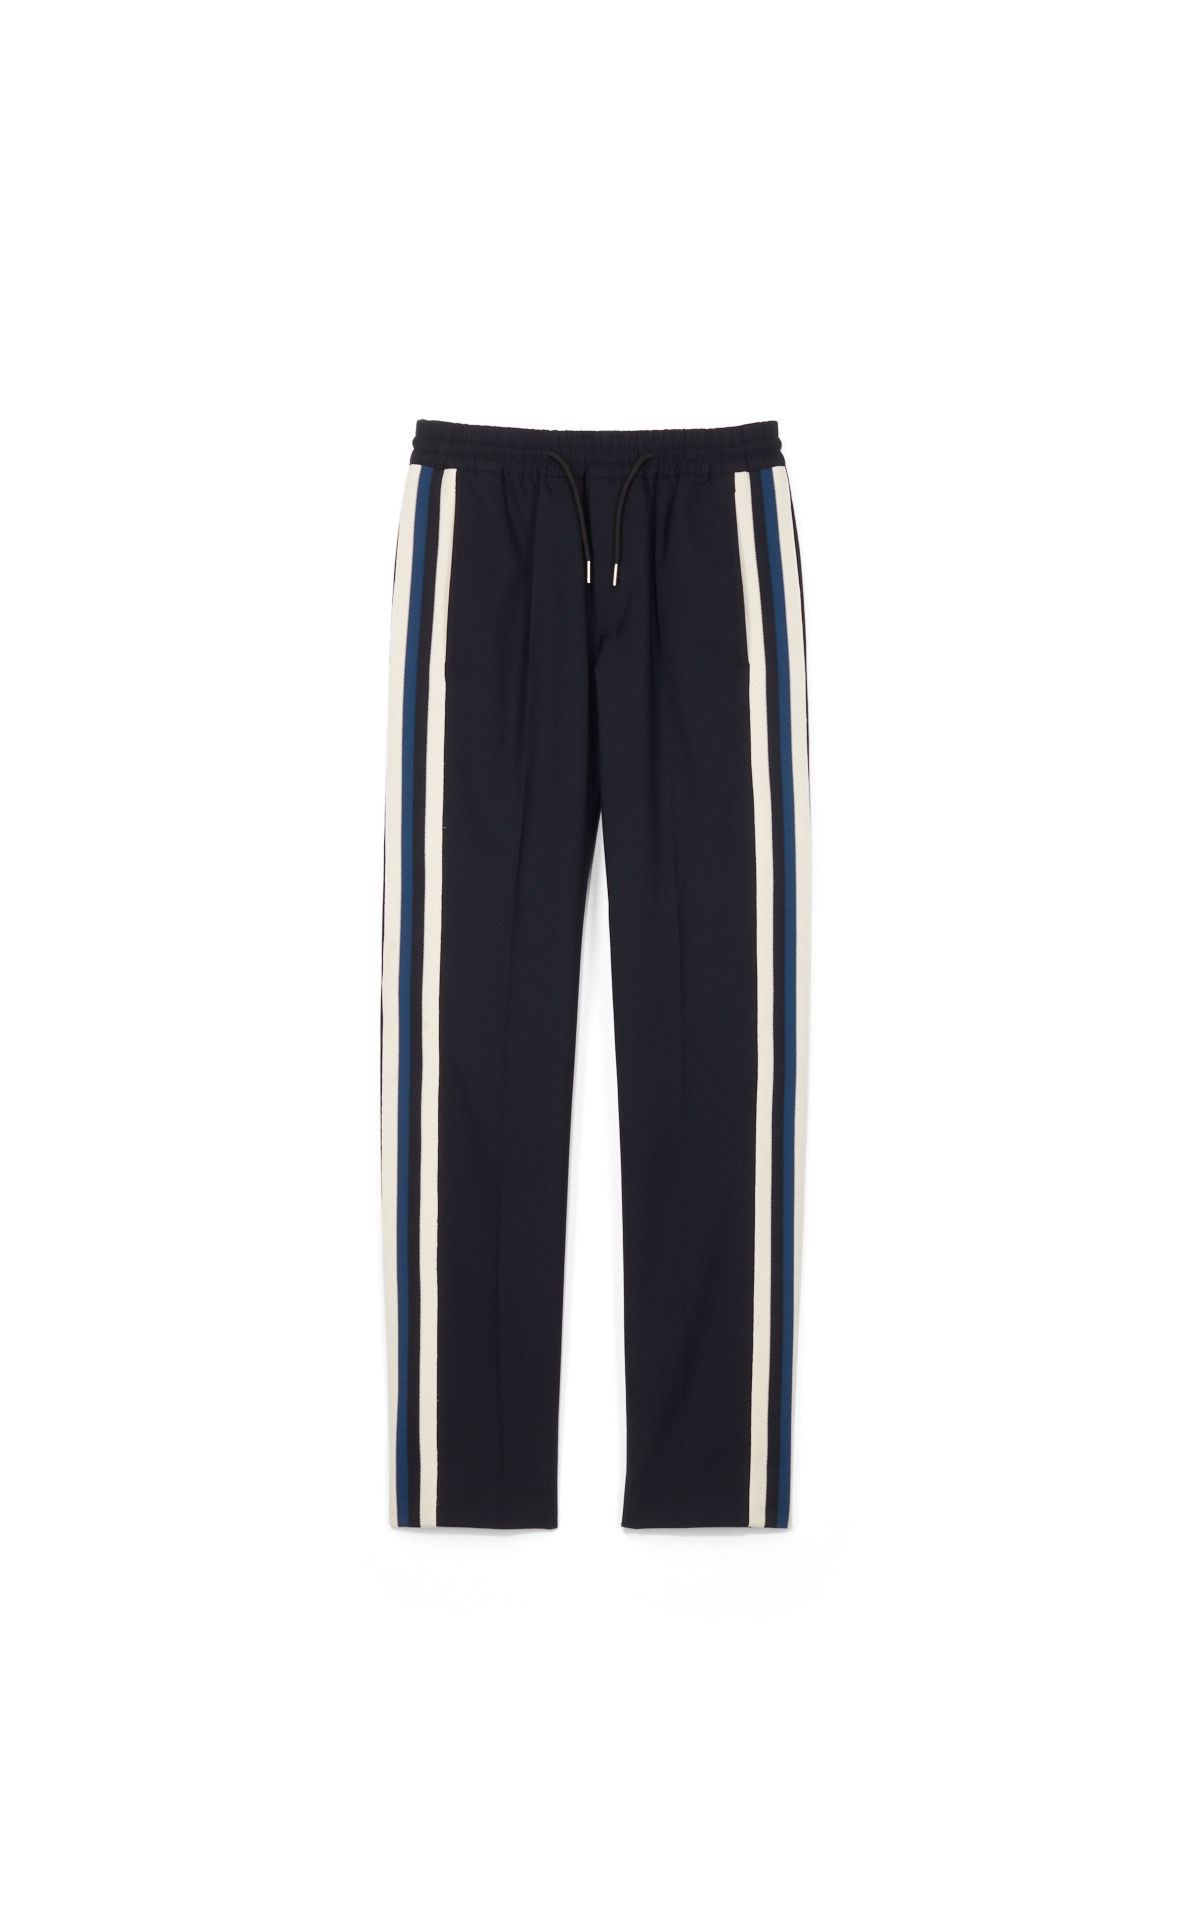 Sandro Men's navy trousers*